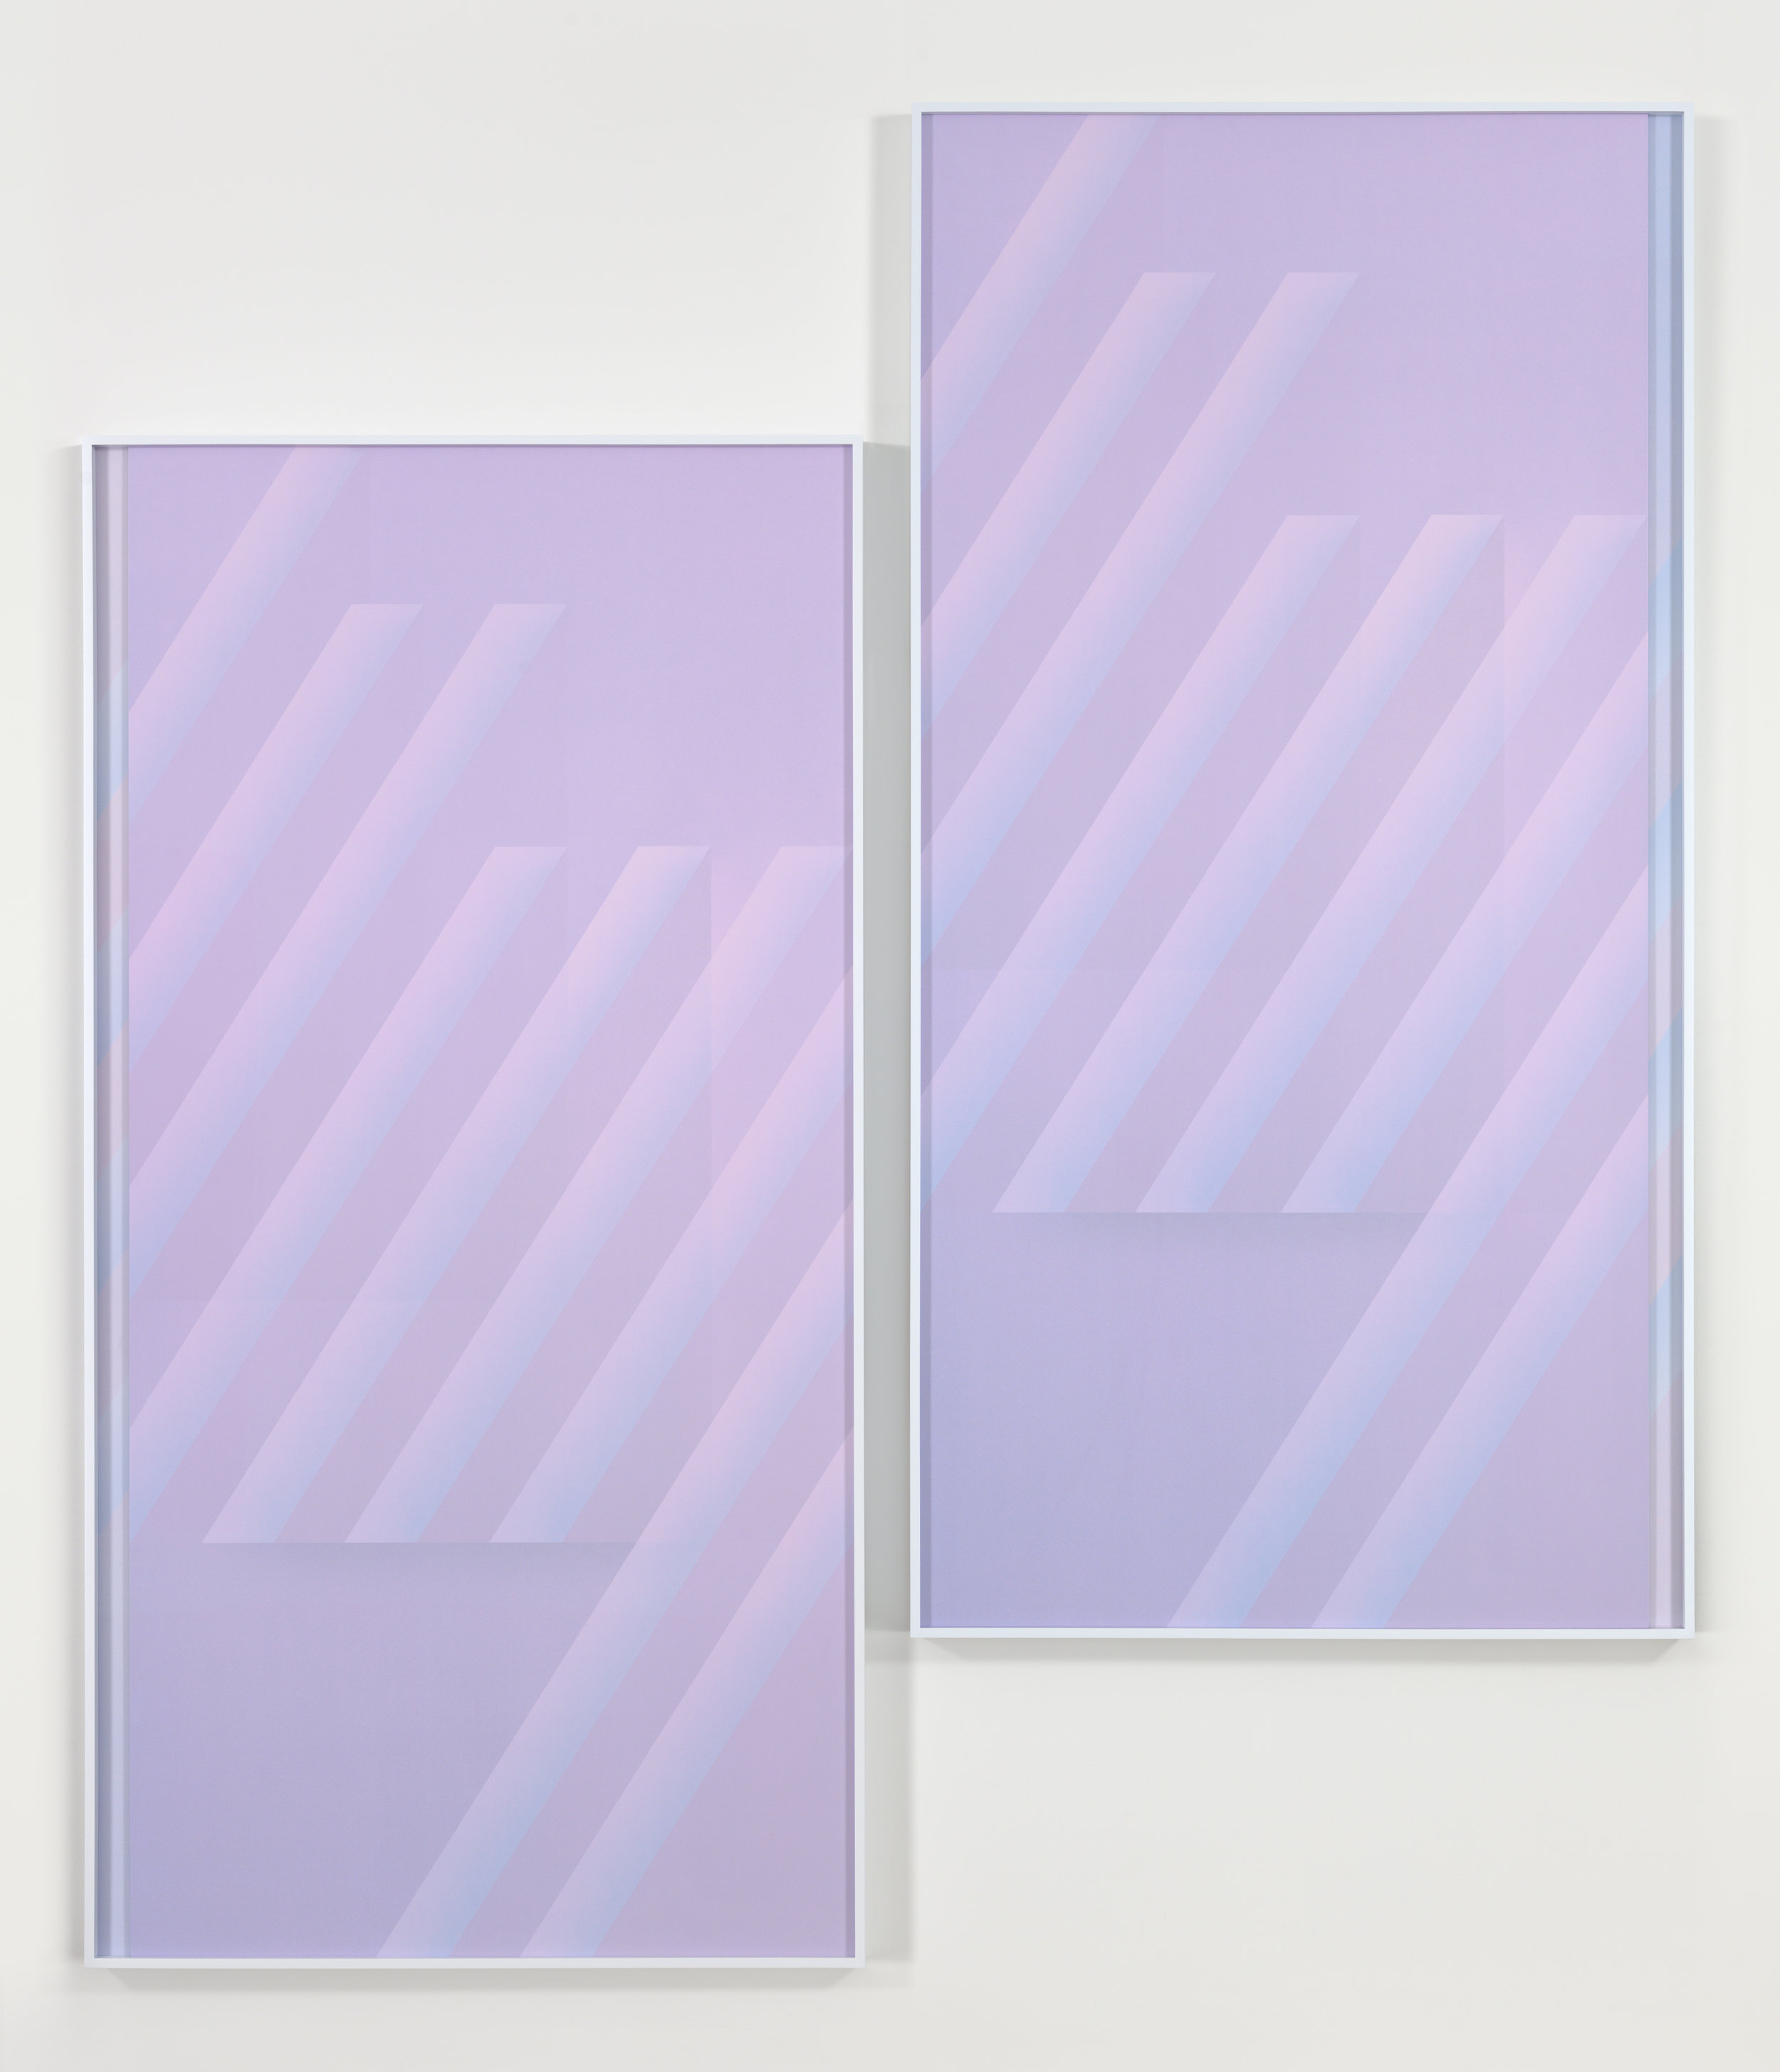 Eternal Triangle, Dusk, 2016  diptych; 2 digital c-prints each  96 7/8 x 48 7/8 inches (each framed)  246.1 x 124.1 cm  107 7/8 x 100 3/4 inches (overall)  274 x 255.9 cm  Edition of 3, 2 APs  Courtesy of the artist and Metro Pictures, New York